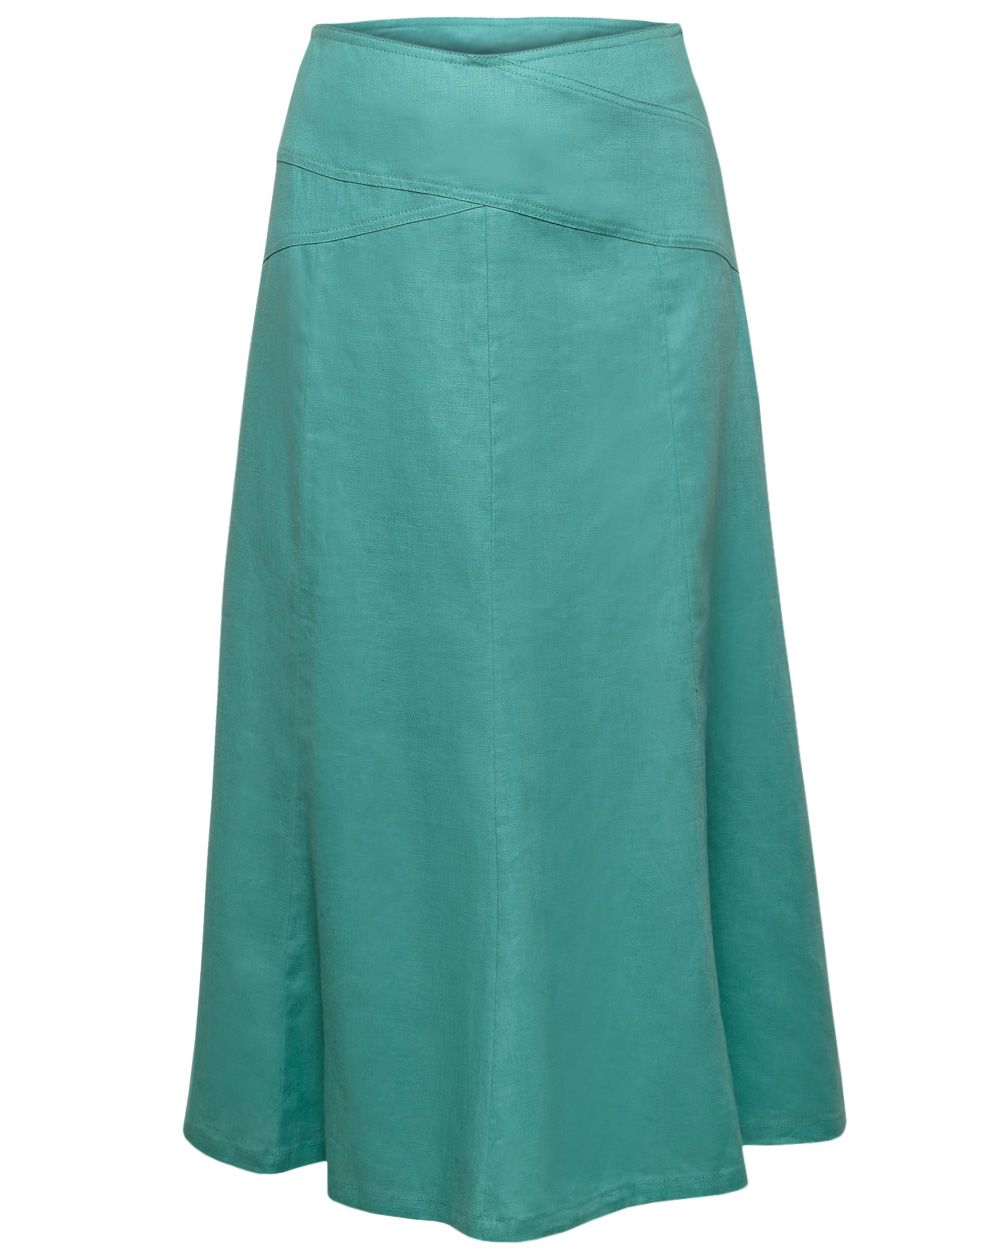 Cross Panel Linen Skirt